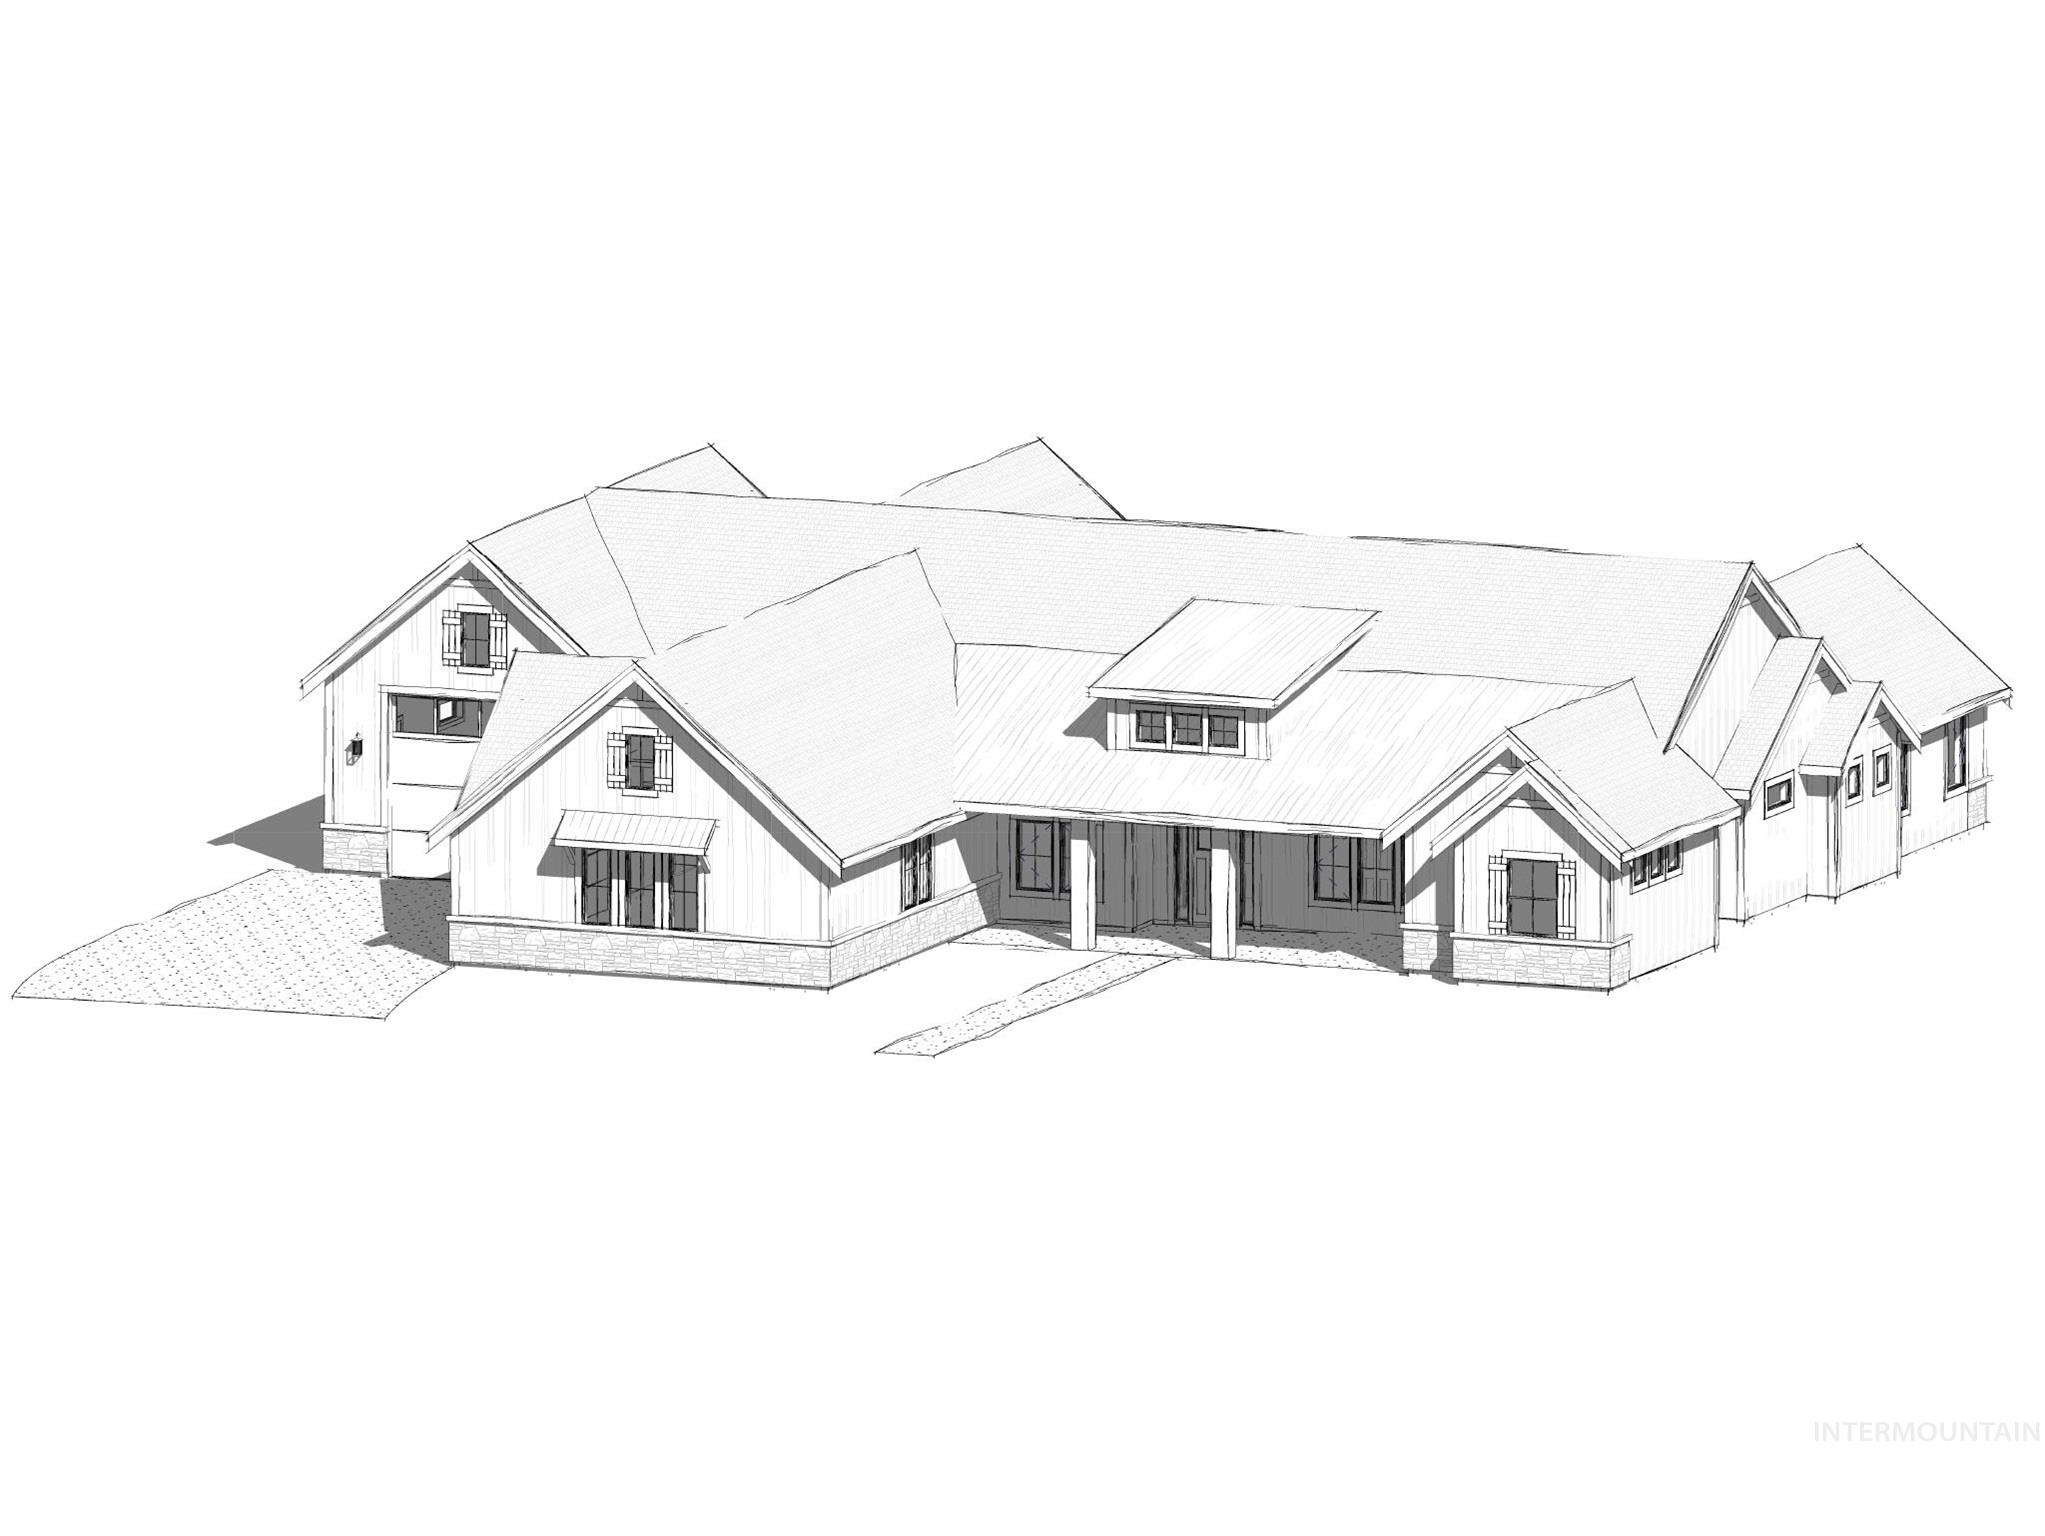 2269 S Trout Stone Way, Eagle, ID 83616